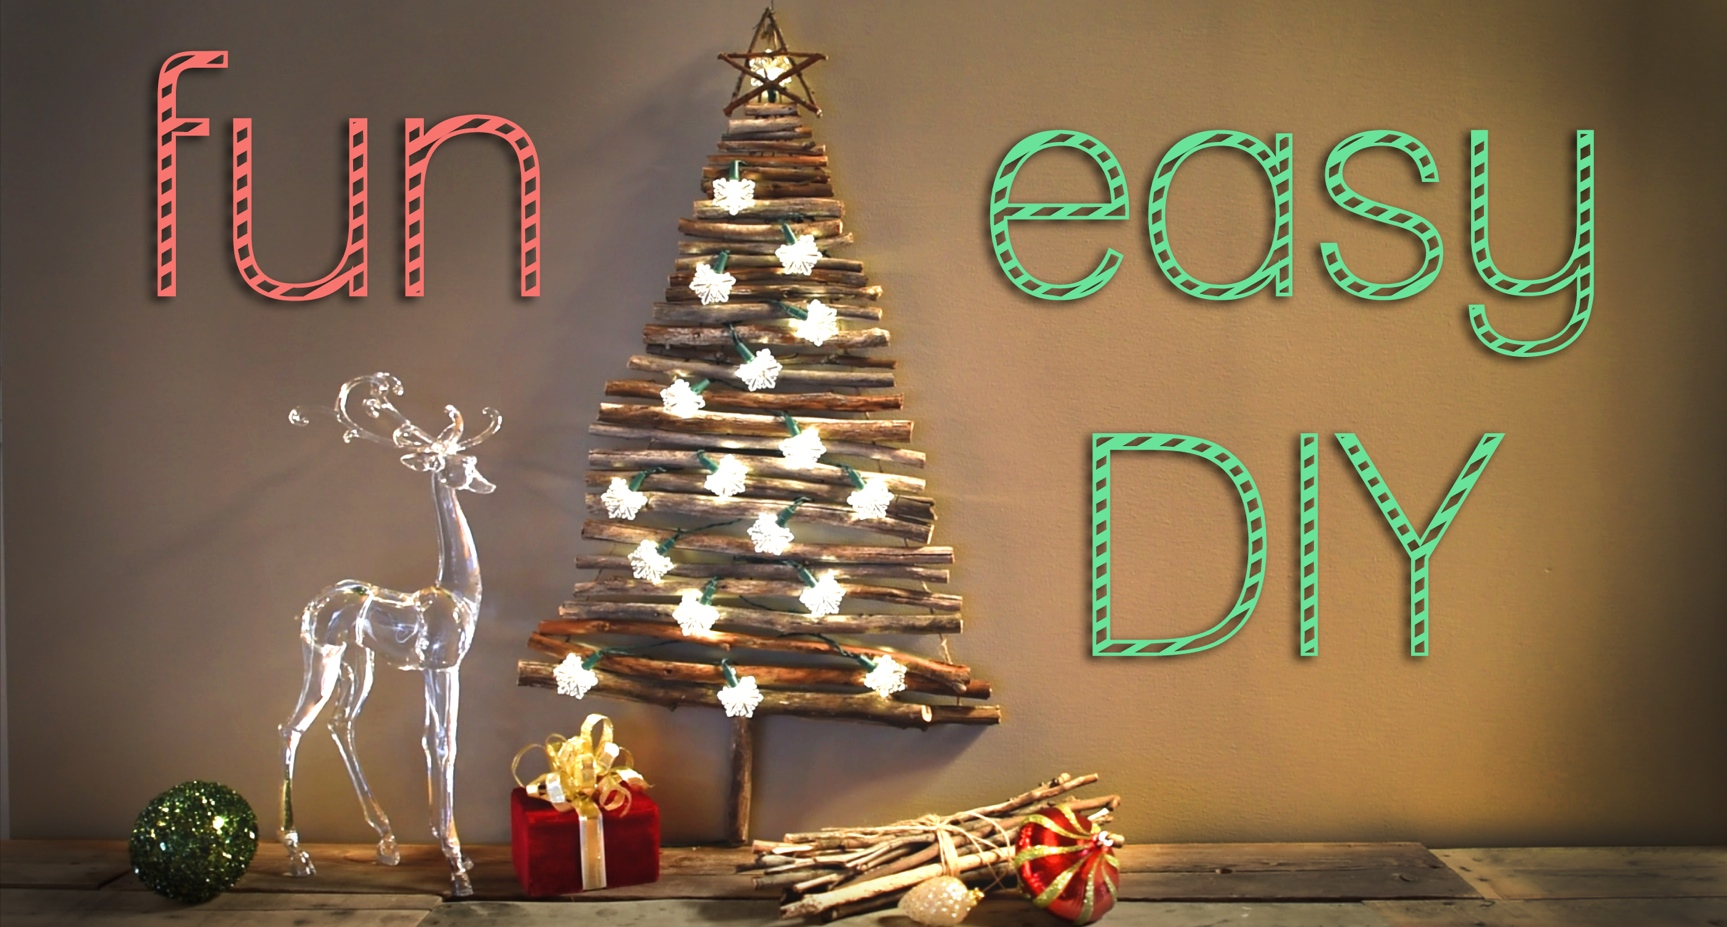 How To Christmas Decor DIY Videos San Diego Interior